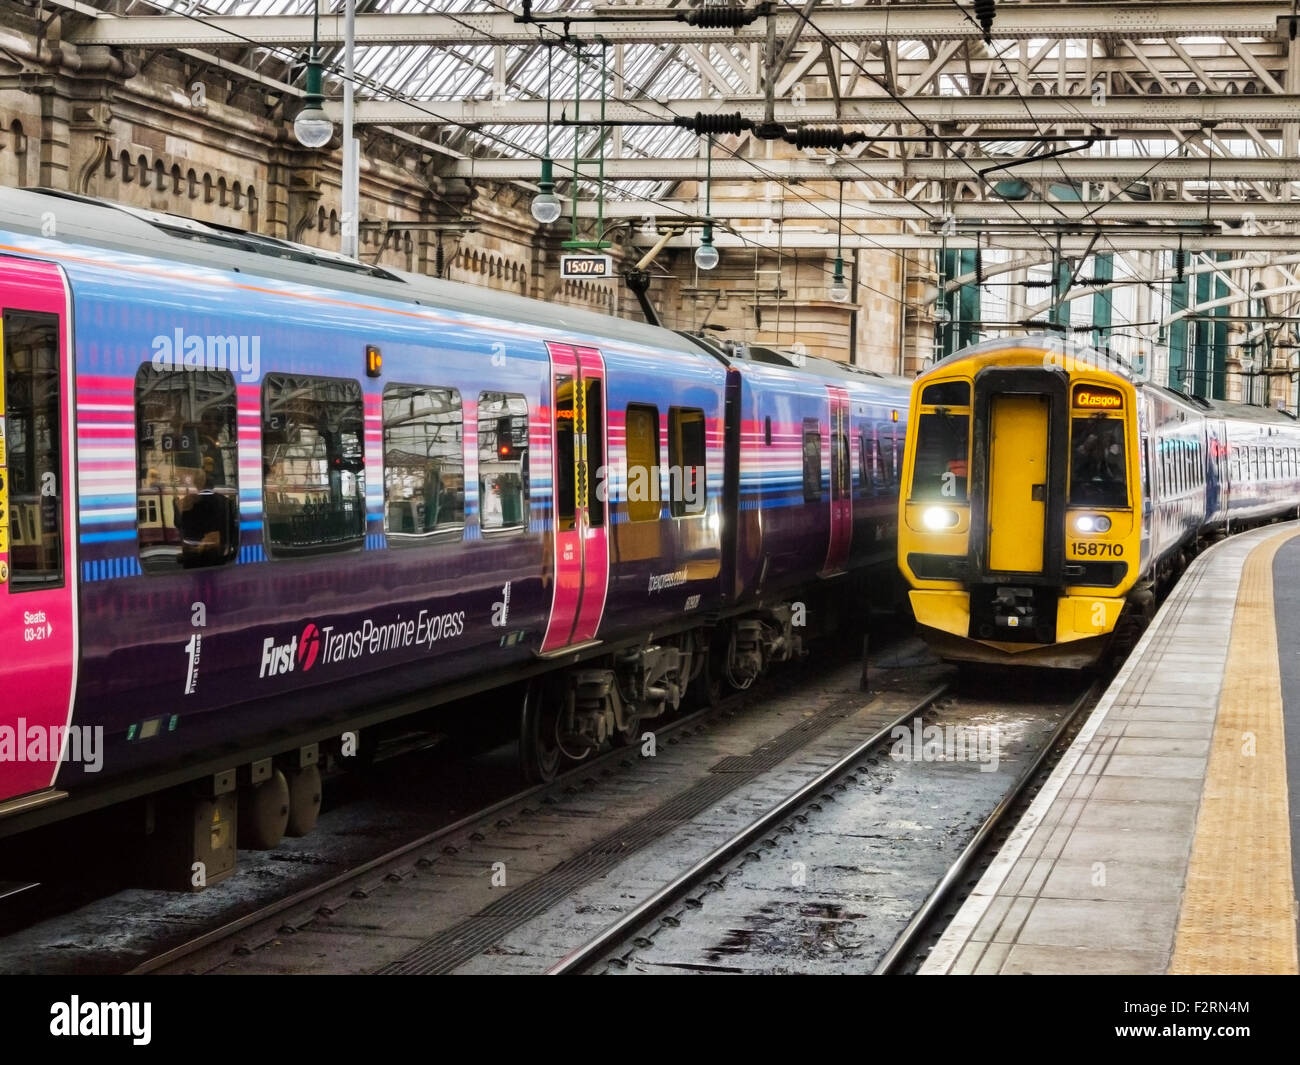 Train approaching platform, Glasgow Central Station, Glasgow, Scotland, UK. - Stock Image